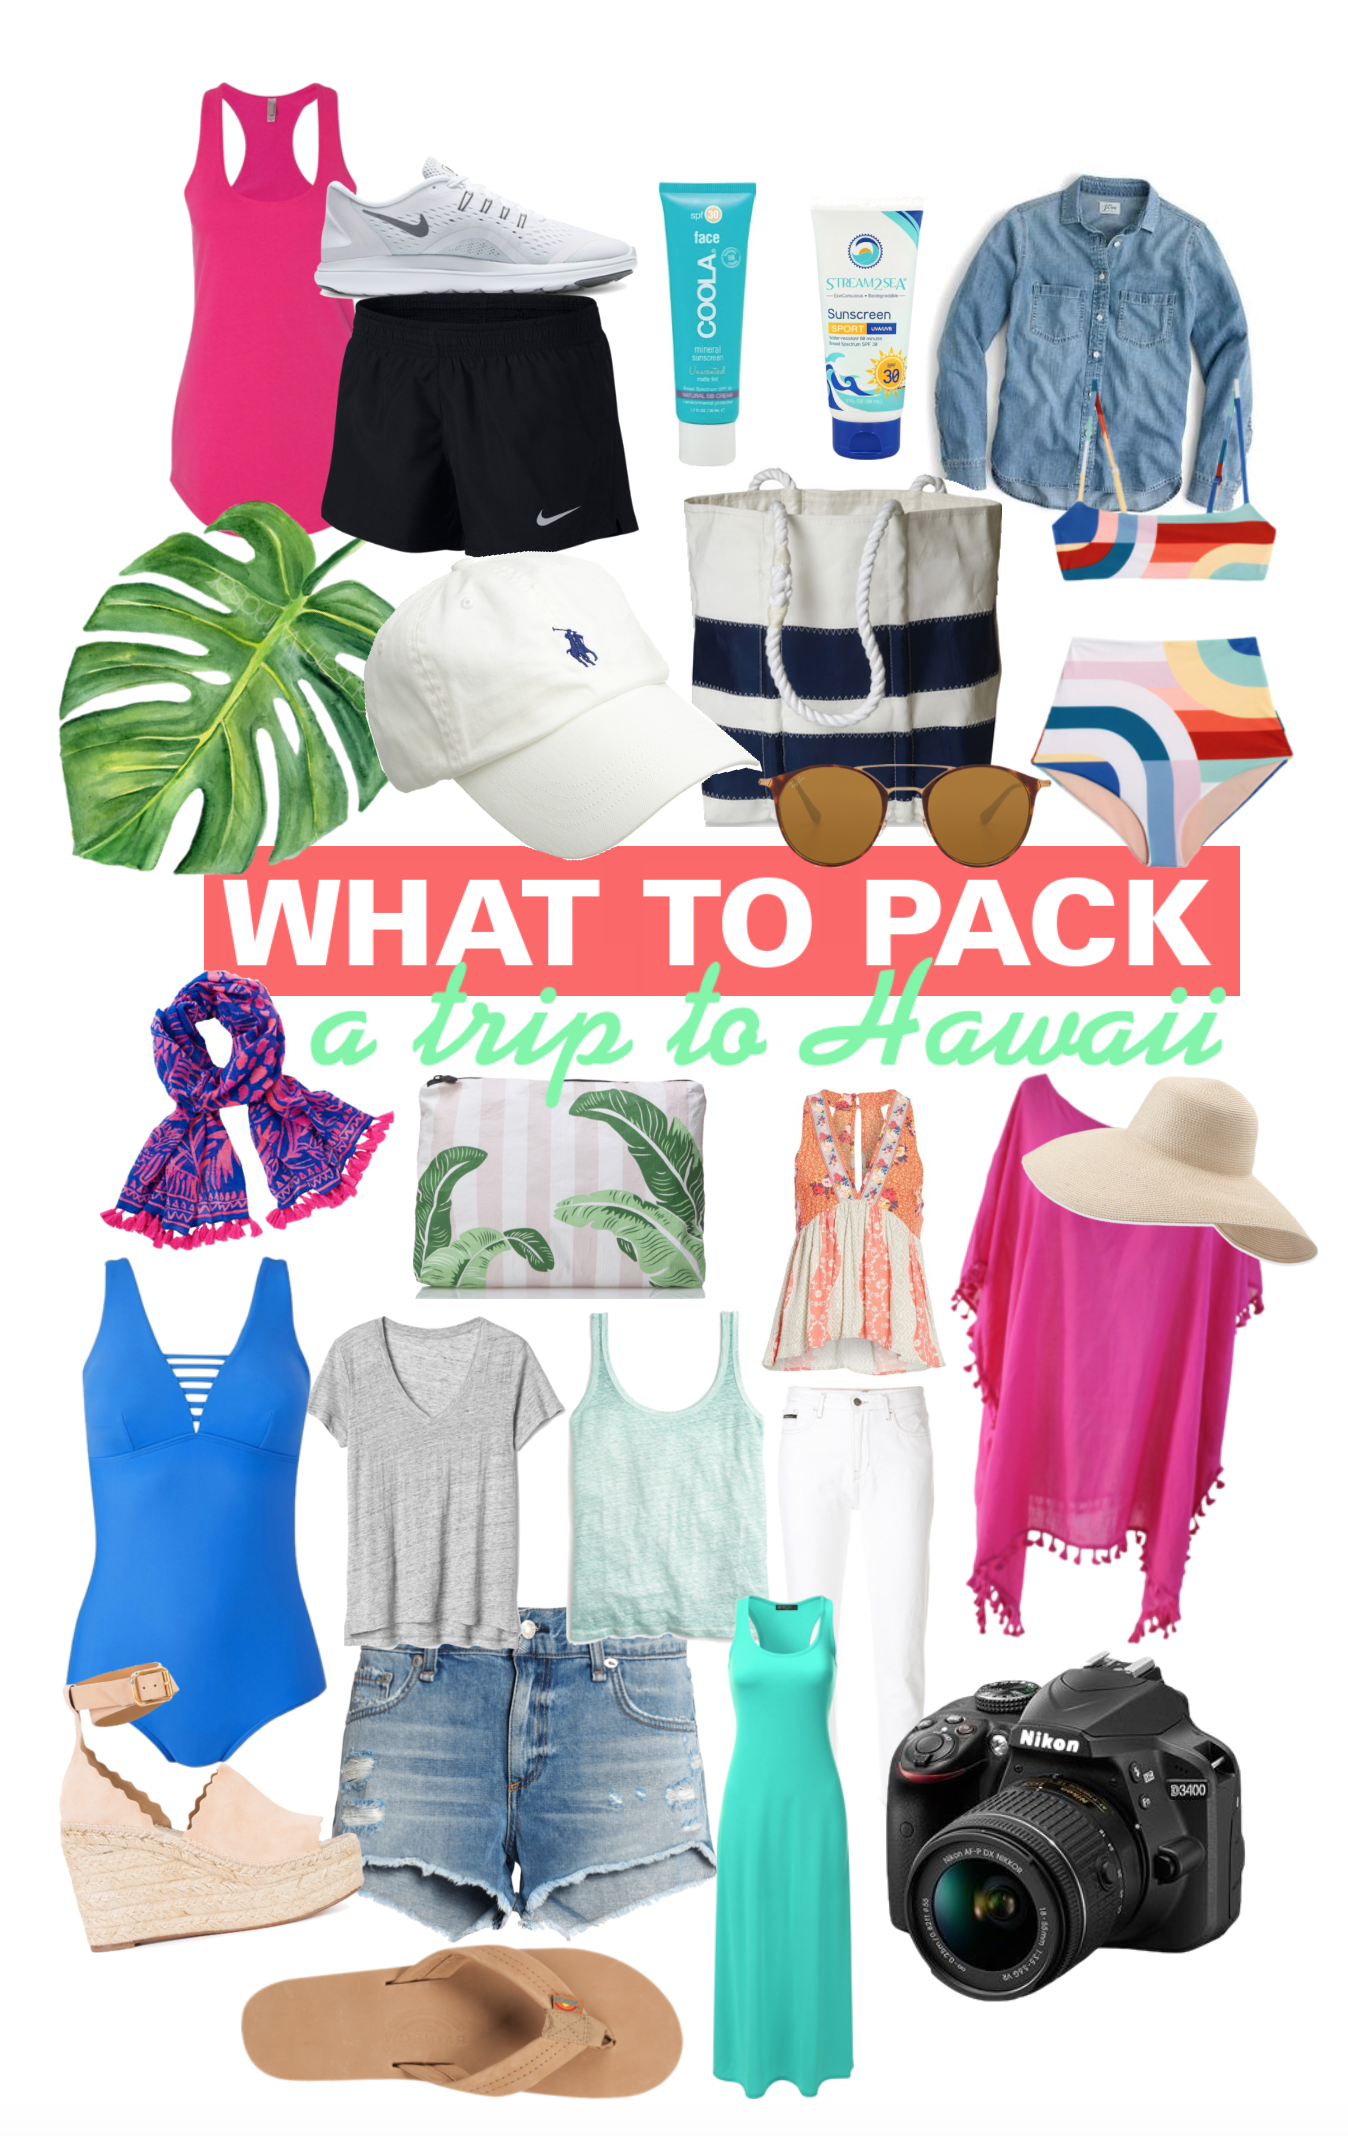 What To Pack For Hawaii - Packing List For Hawaii - Oahu Kauai Maui - What Should I Pack For My Honeymoon - Outfit Ideas For Hawaii - Communikait by Kait Hanson